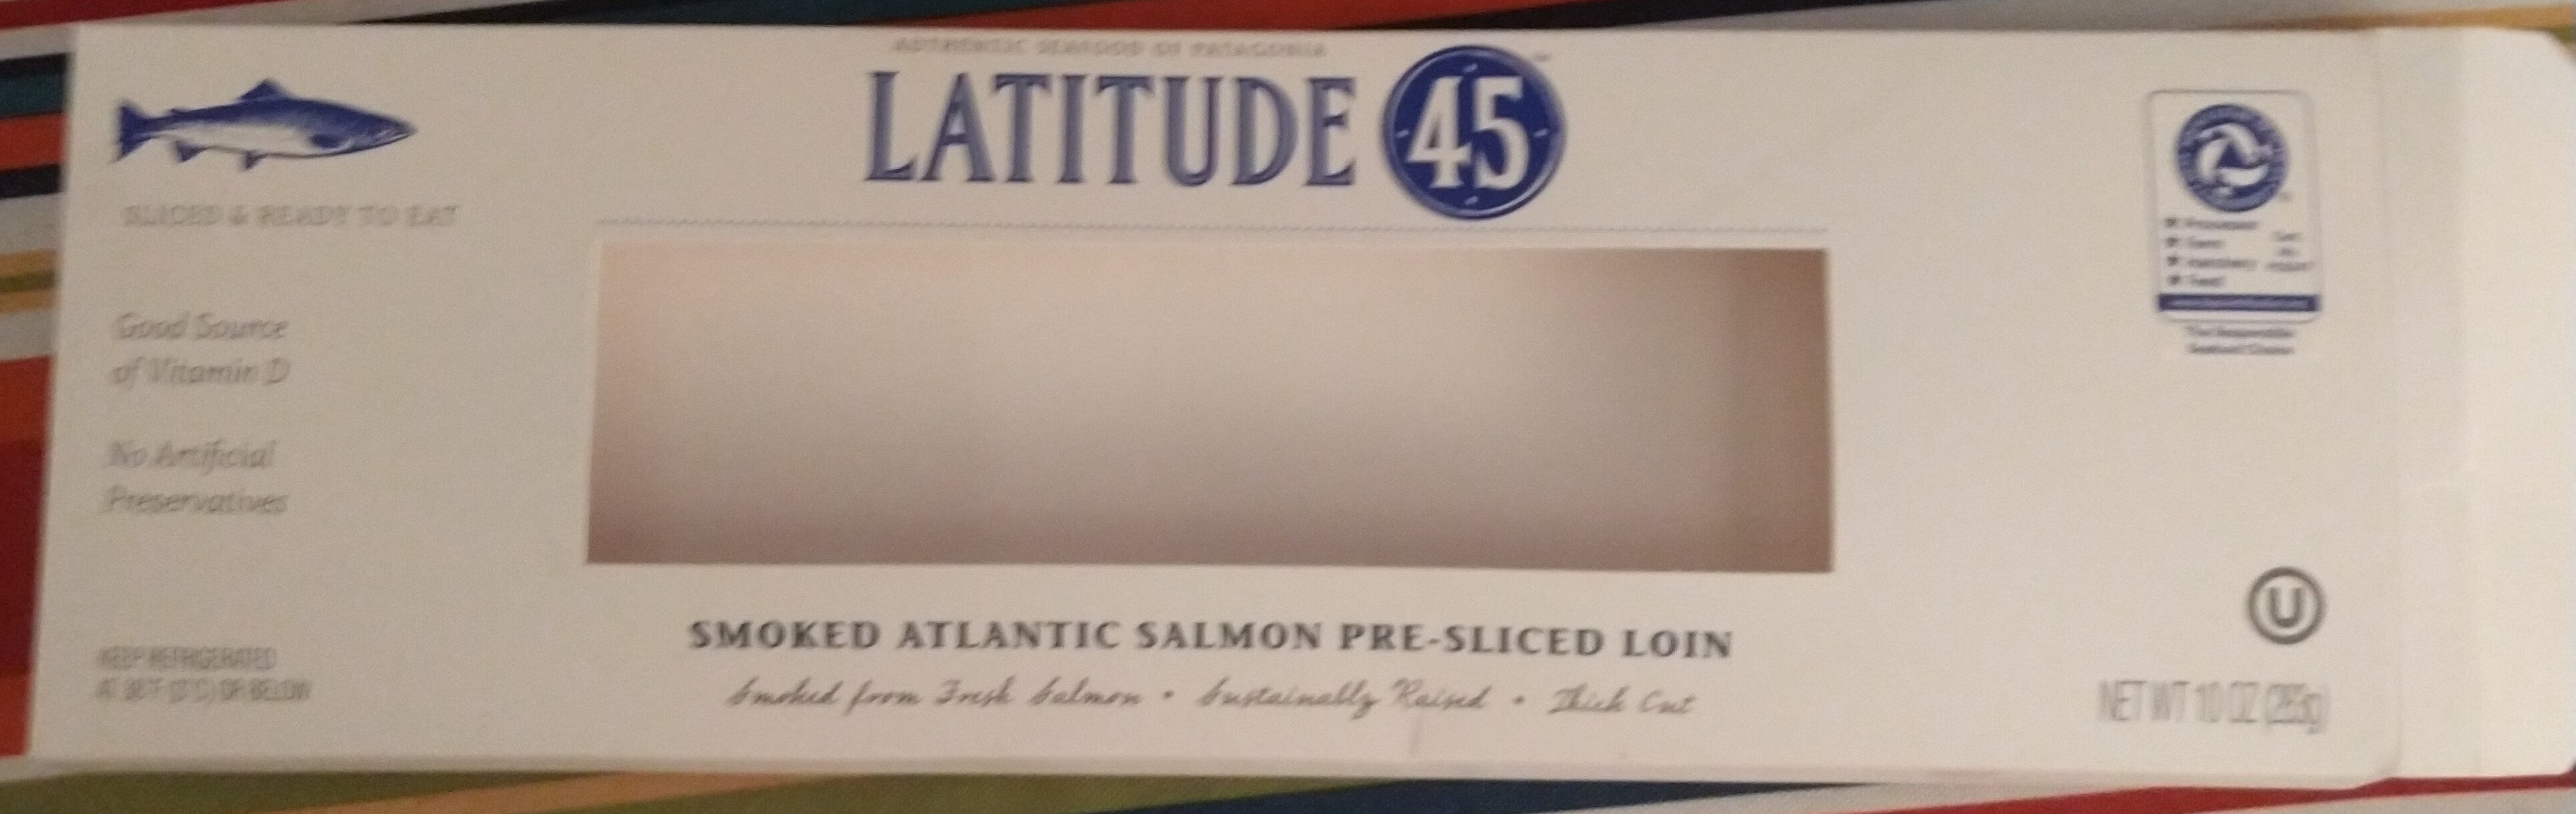 Smoked Atlantic Salmon pre-sliced loin - Product